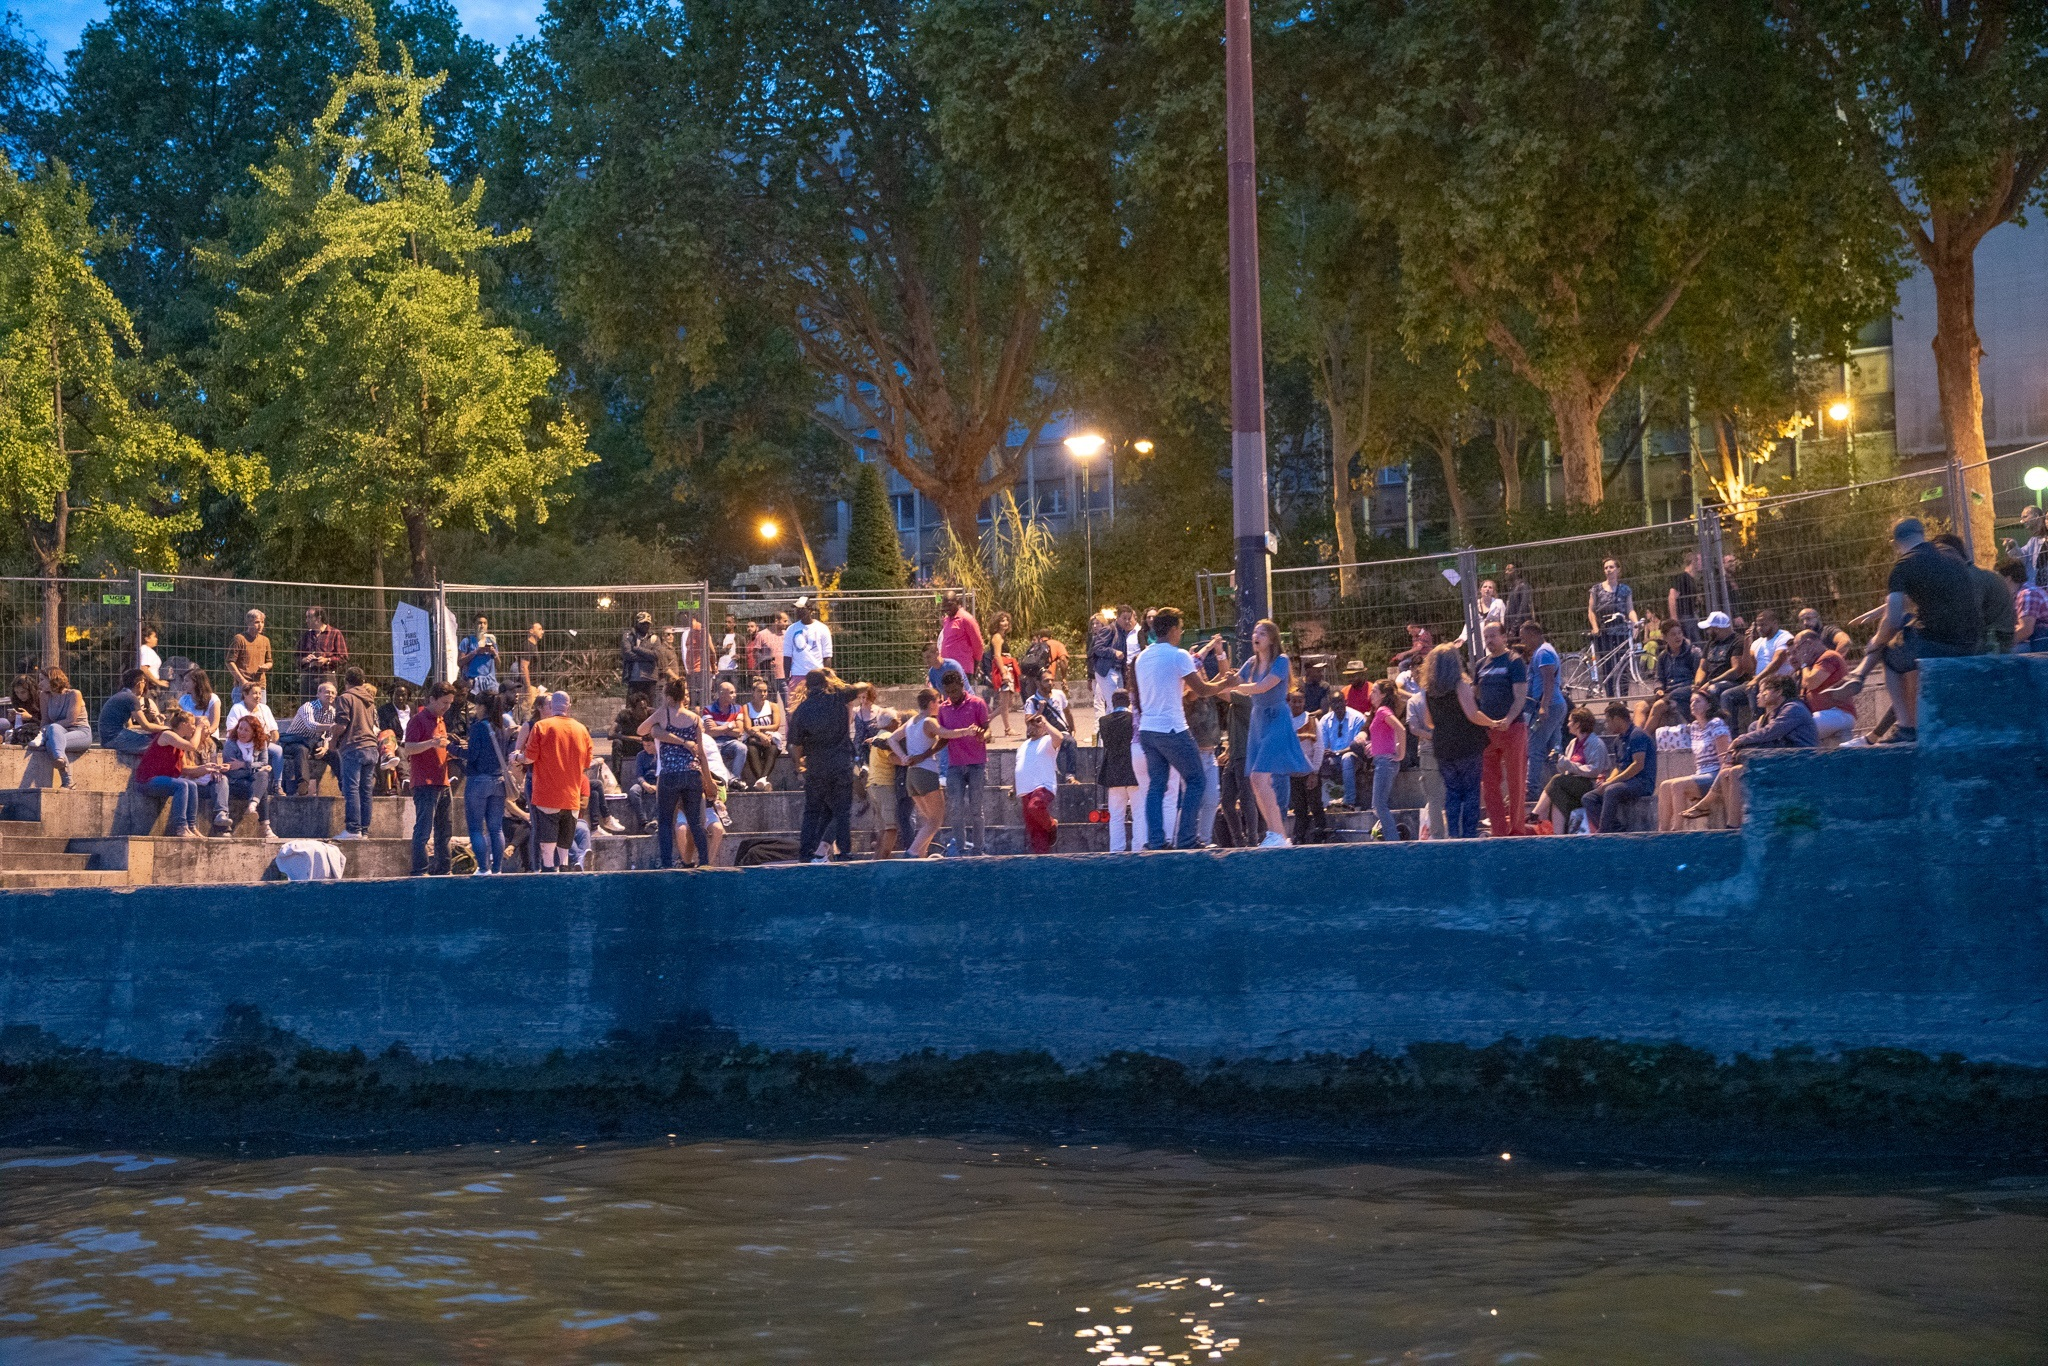 Dancing on the banks of the Seine river in Paris, France